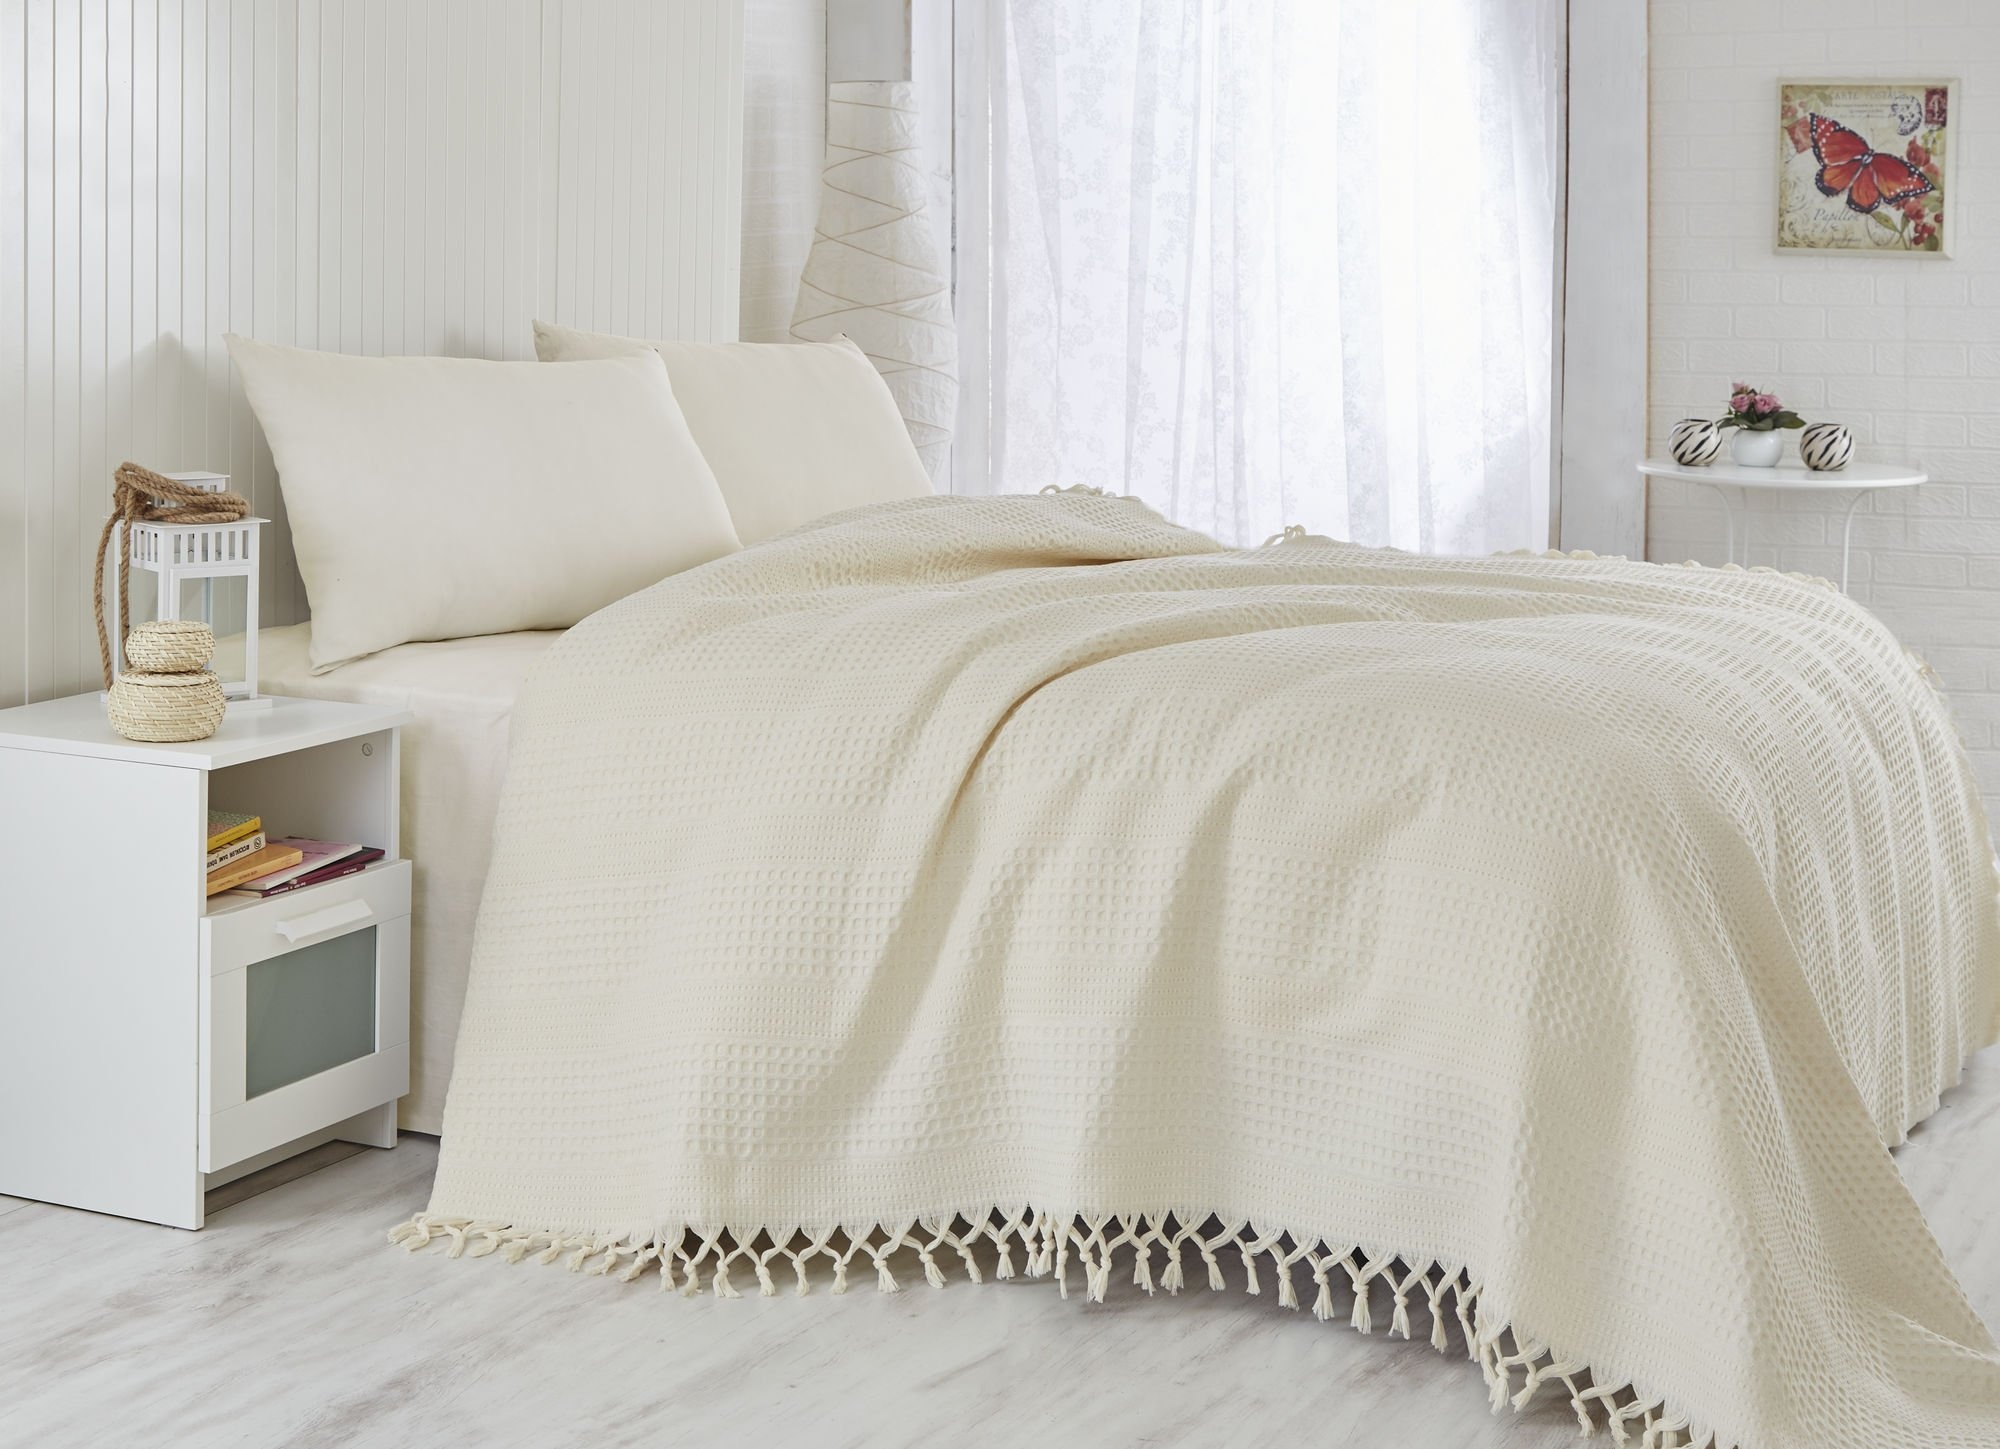 LaModaHome Colors Coverlet, 100% Cotton - Cream Color, Plain, Knitted, 1 Colored - Handmade Fringe - Size (86.6'' x 94.5'') for Queen Bed